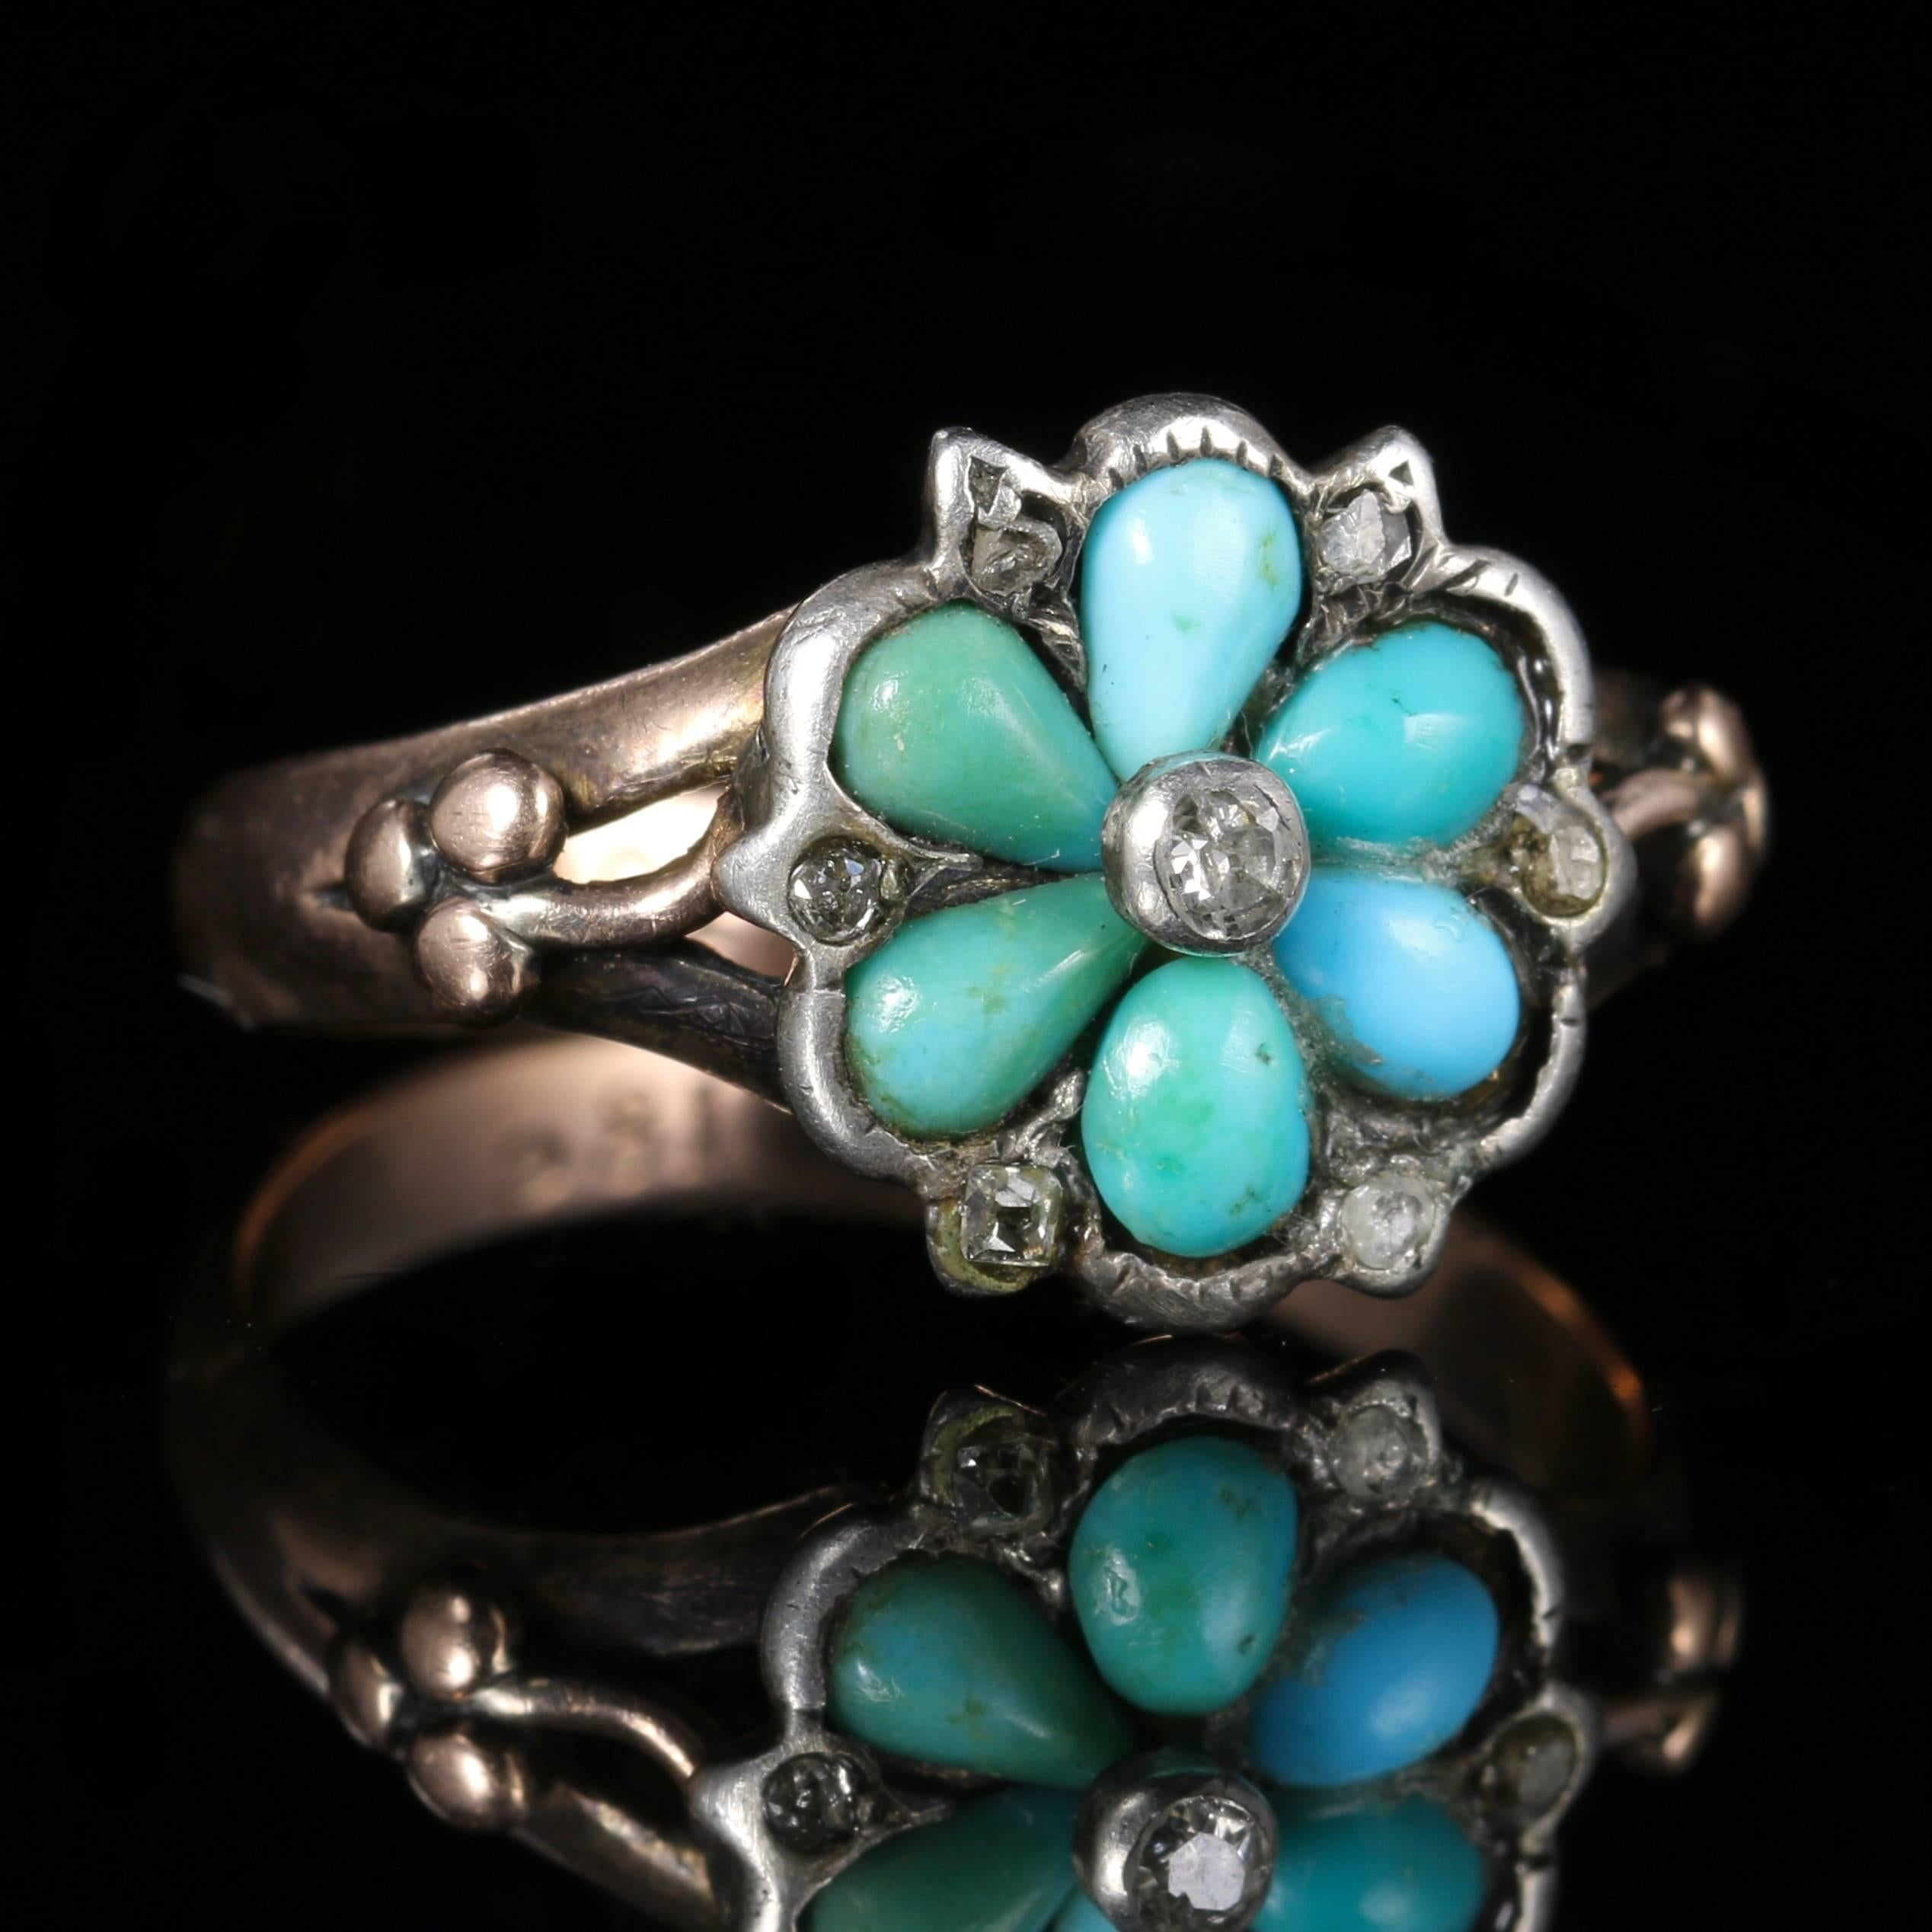 ring diamond c to georgian turquoise detail antique antiques art and gold